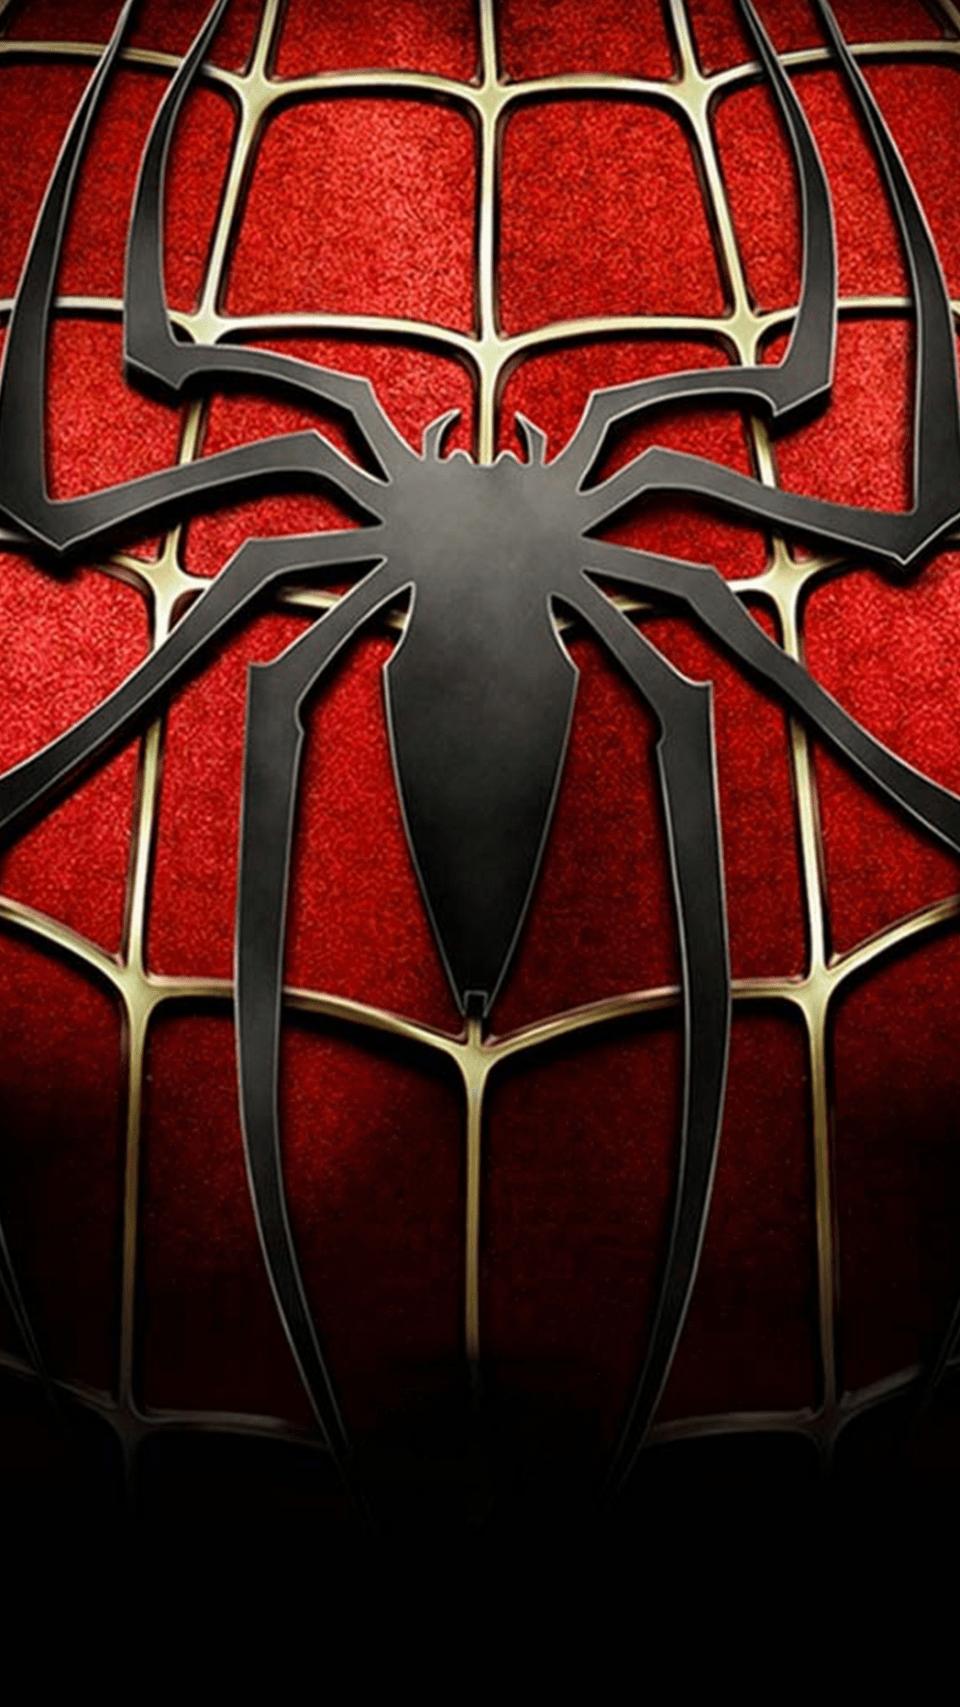 Why It Is Not The Best Time For Spiderman Hd Wallpaper Iphone Spiderm Superman Fondos De Pantalla Fondo De Pantalla De Avengers Fondo De Pantalla De Iron Man